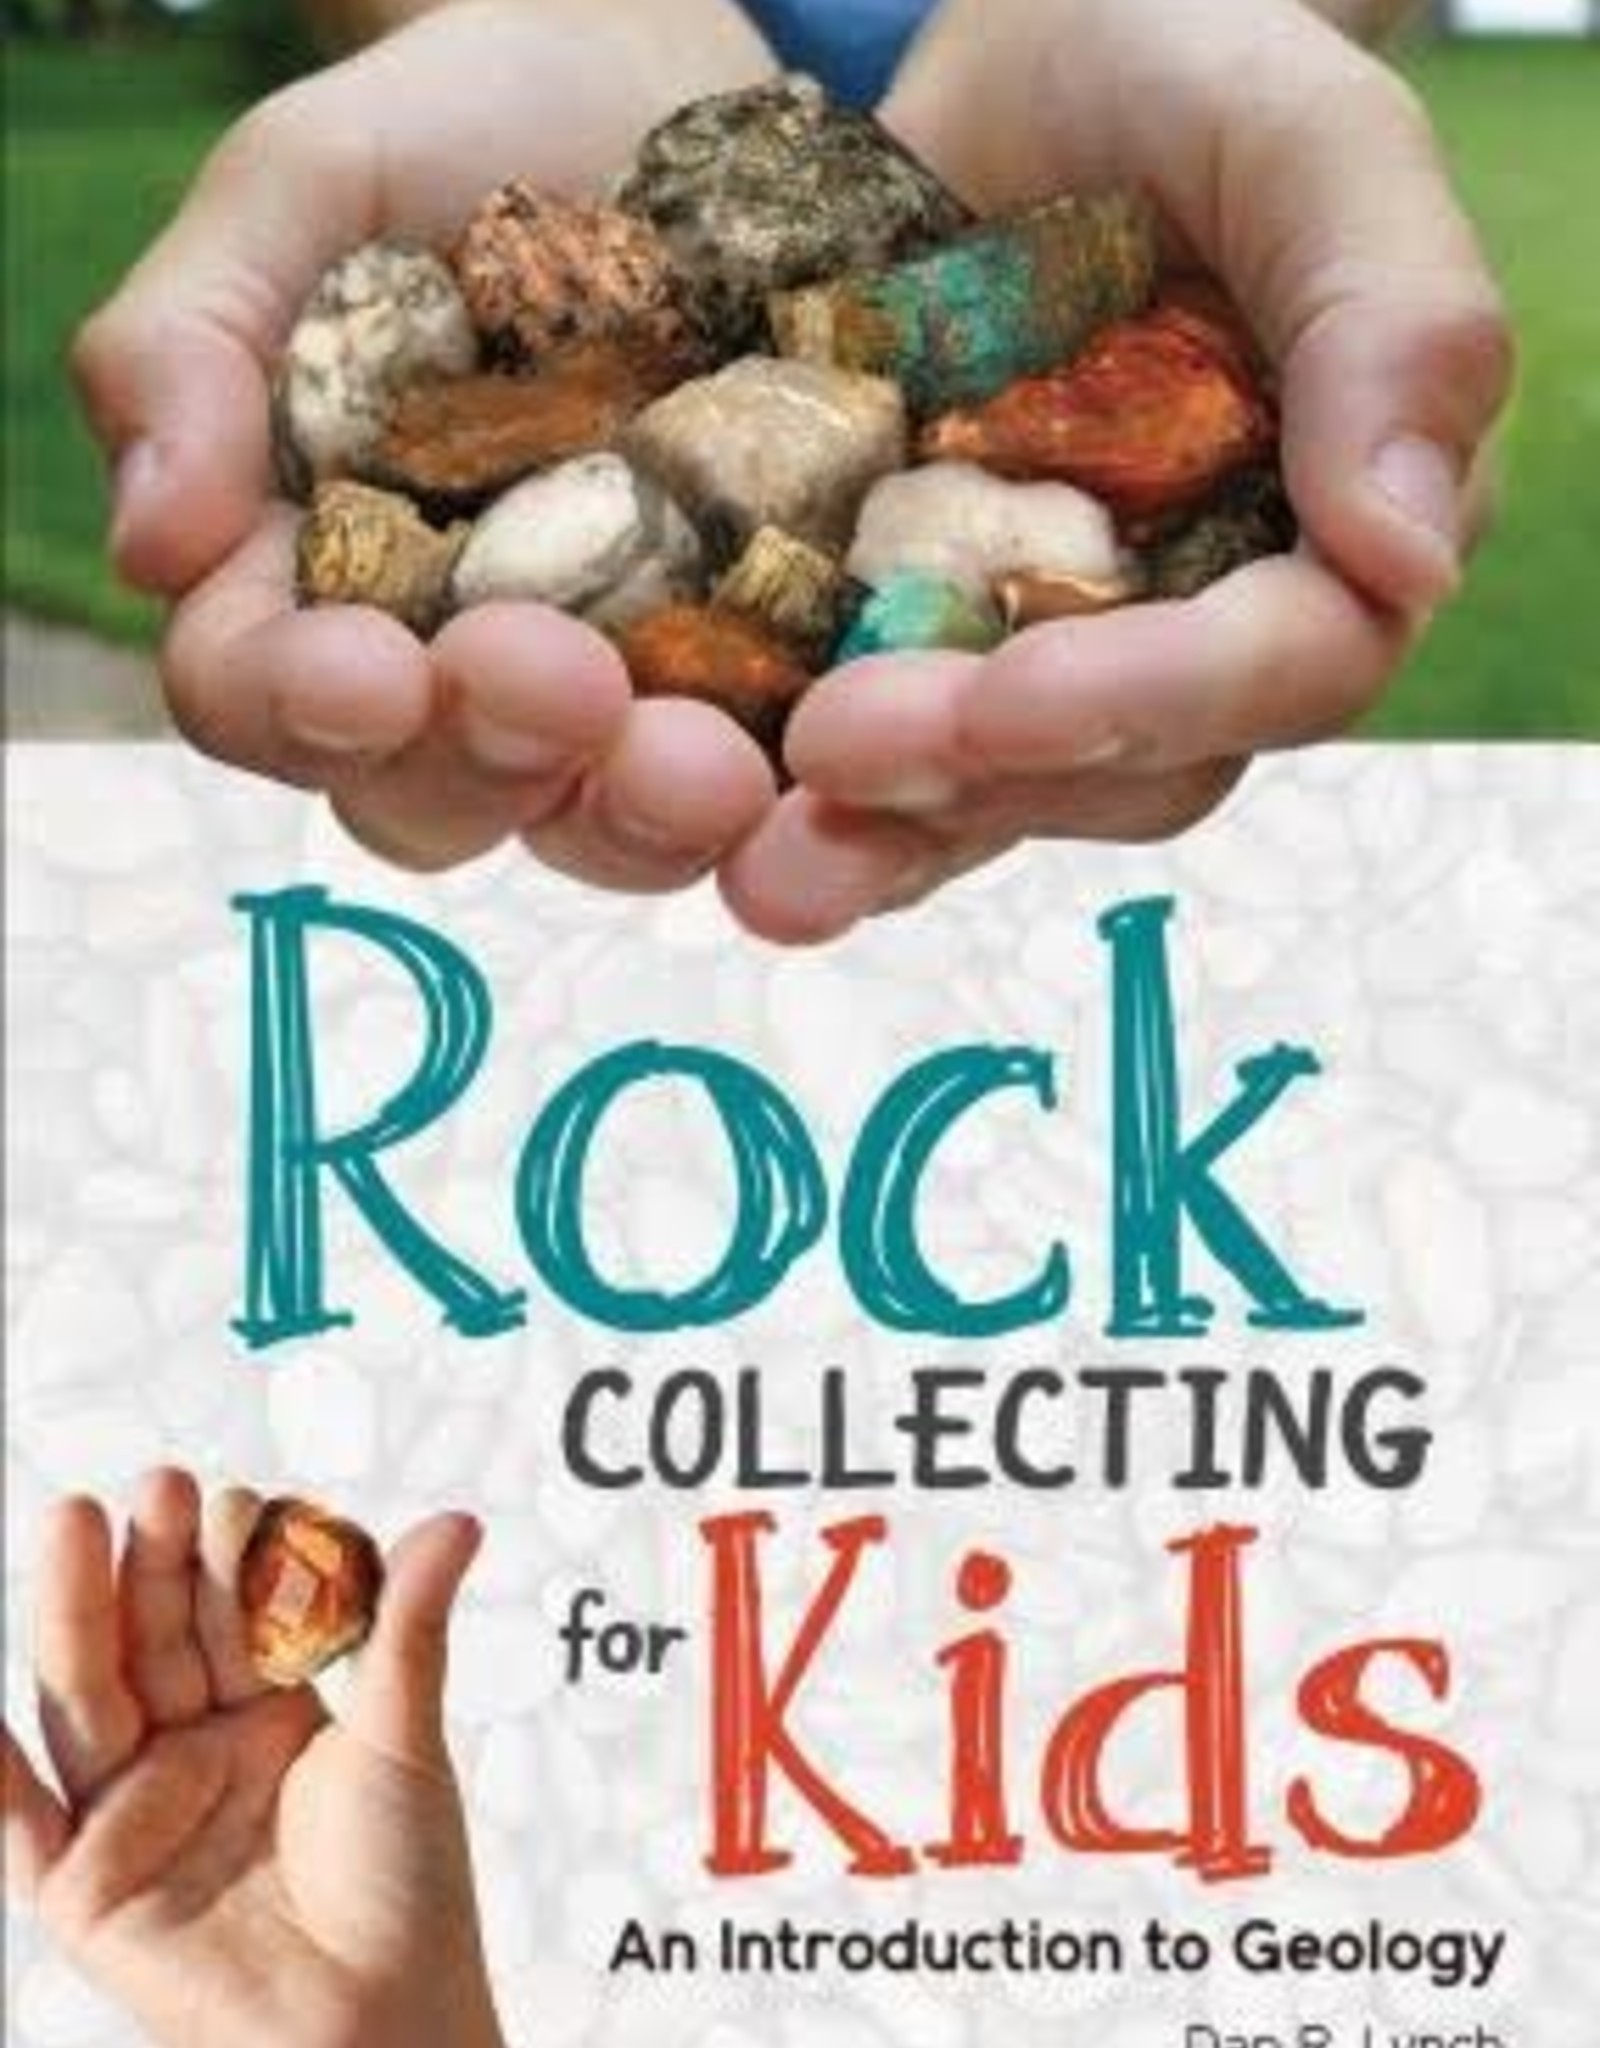 Rock Collecting for Kids: An Introduction to Geology